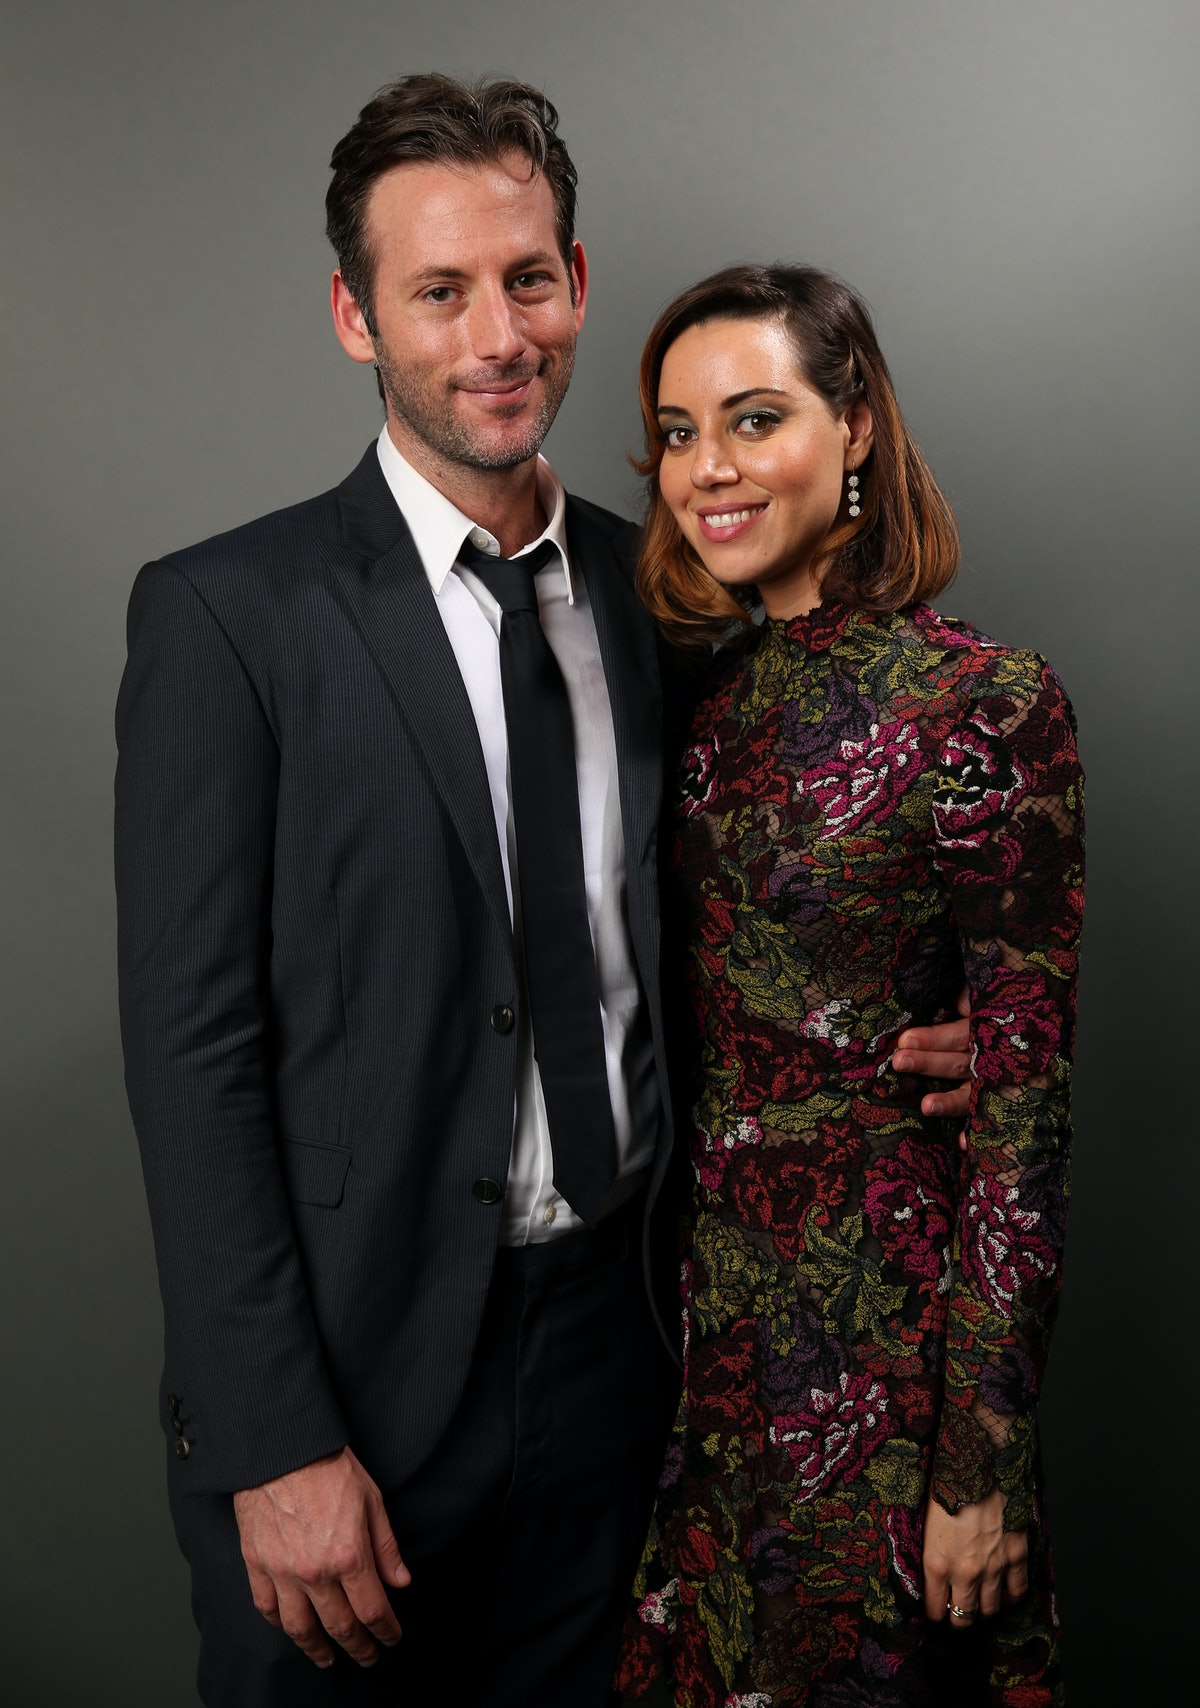 Aubrey Plaza's Boyfriend Jeff Baena Has Helped Bring Some Of Her Most Memorable Roles To Life